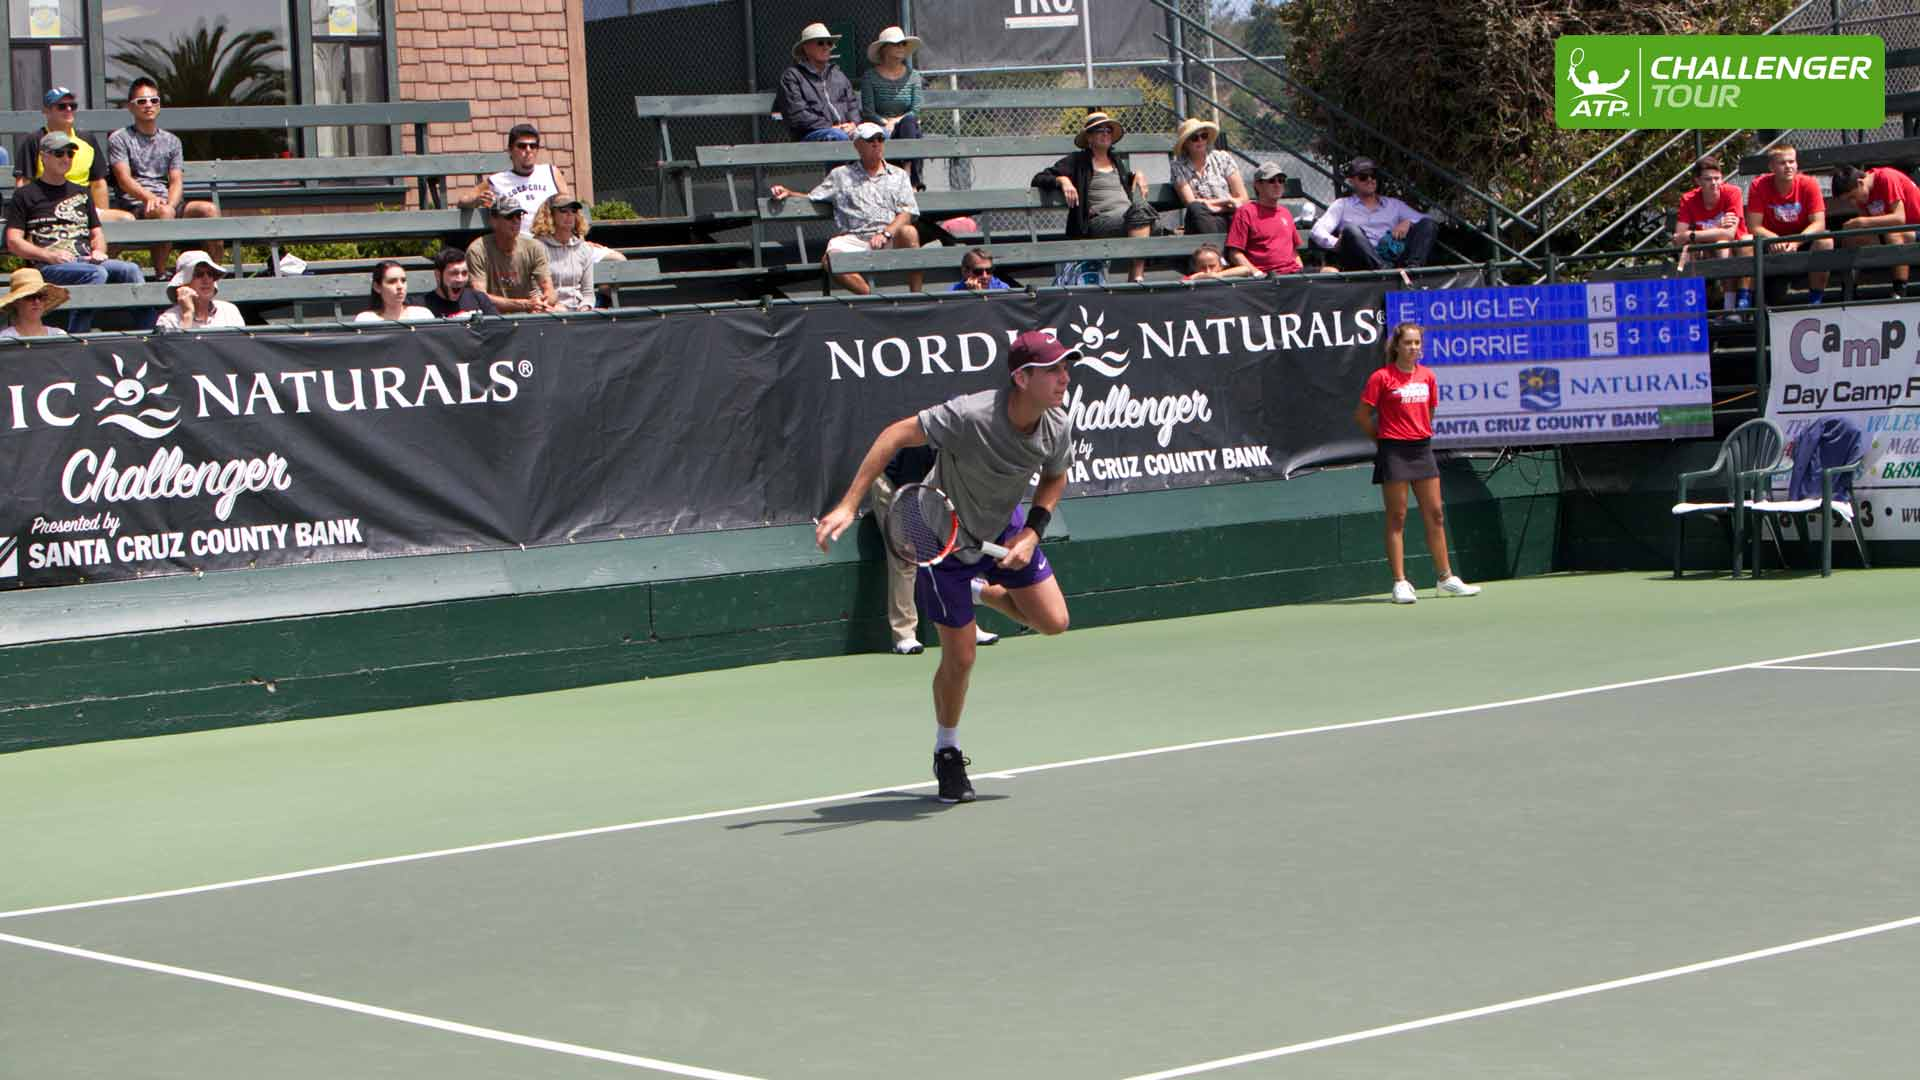 Cameron Norrie enjoys a breakthrough week at the ATP Challenger Tour event in Aptos.